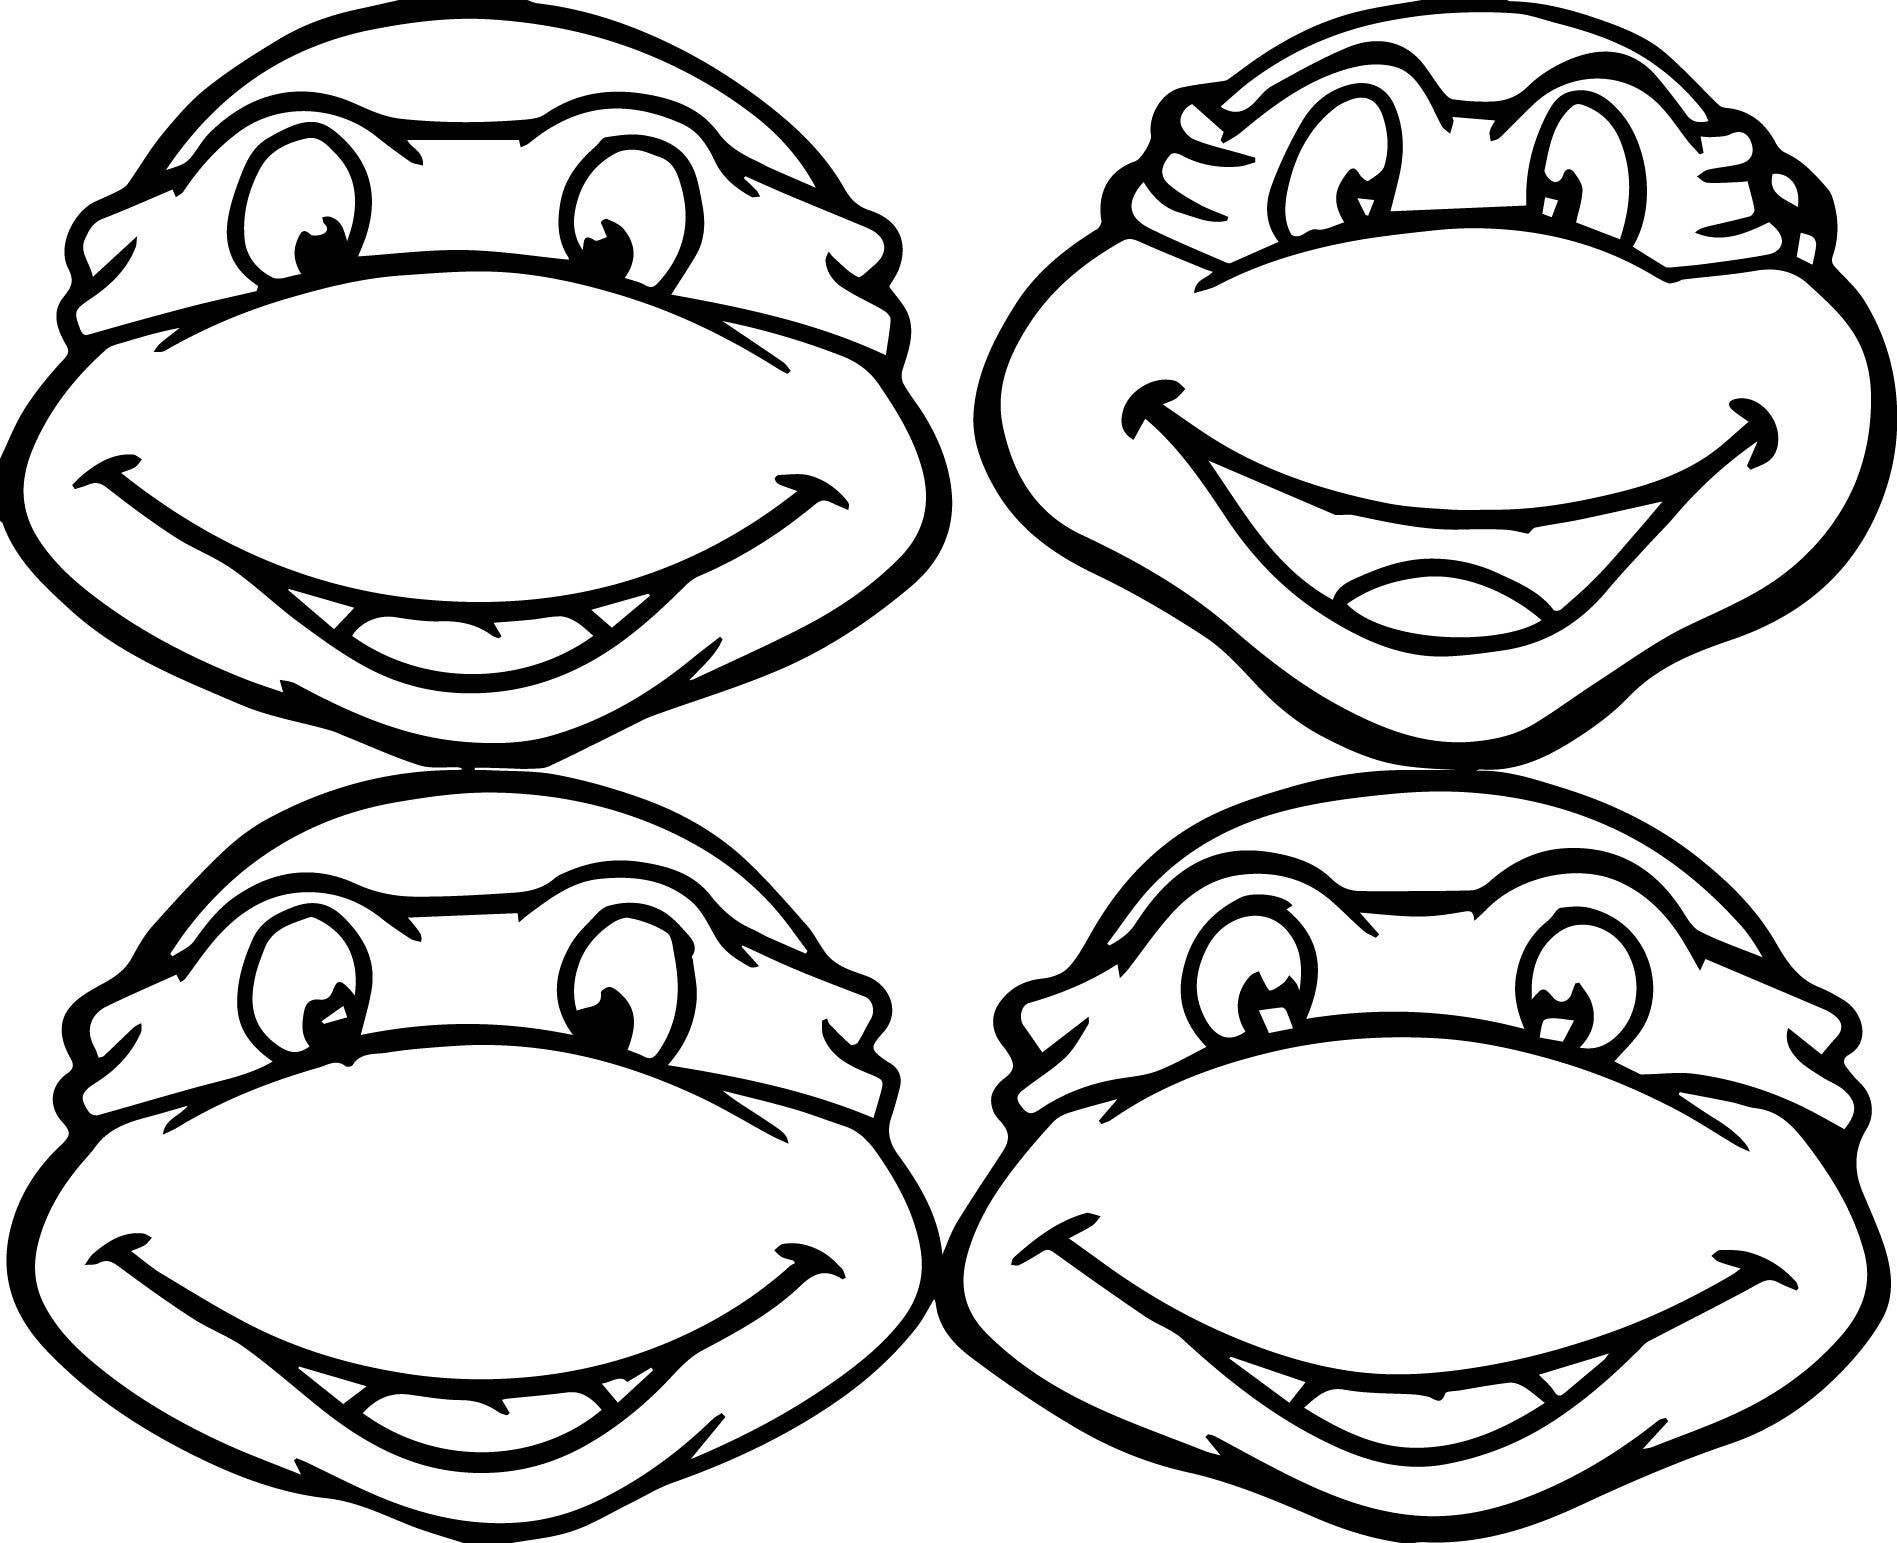 coloring pages of turtle turtle coloring pages free download on clipartmag of coloring turtle pages